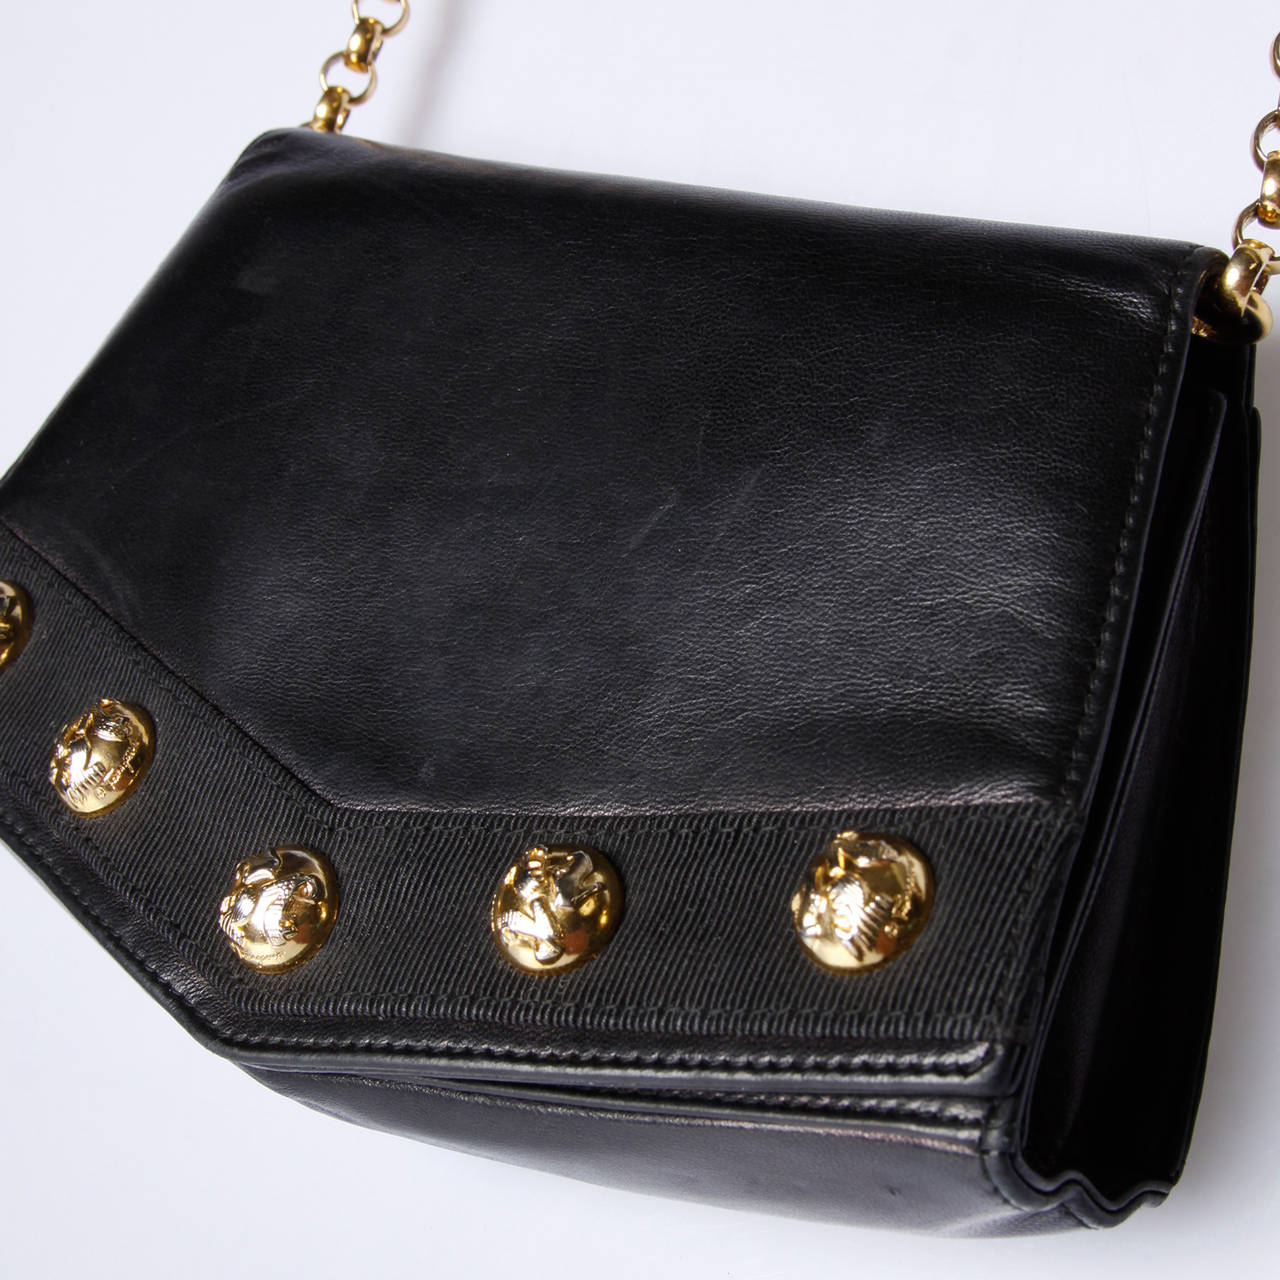 Salvatore Ferragamo Vintage Black Leather Gold Studded Bag Or Purse In Excellent Condition For